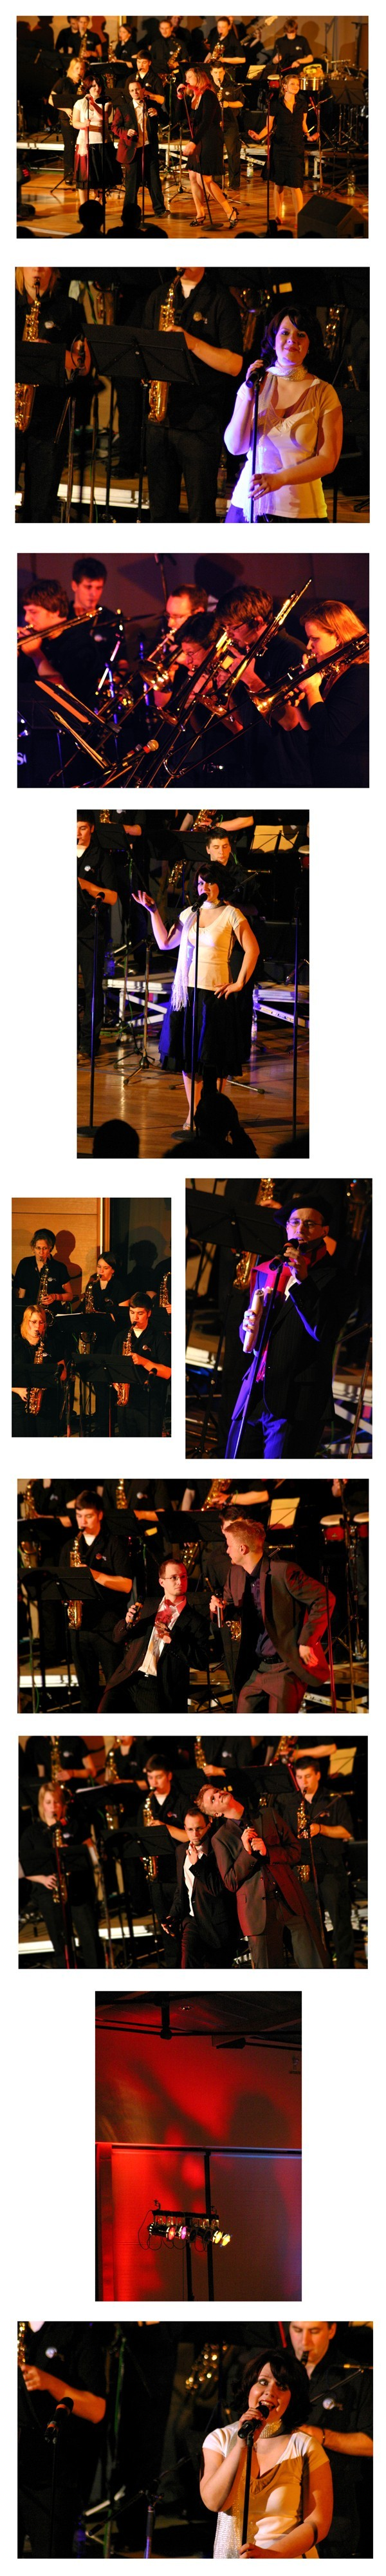 Big-Band in Concert